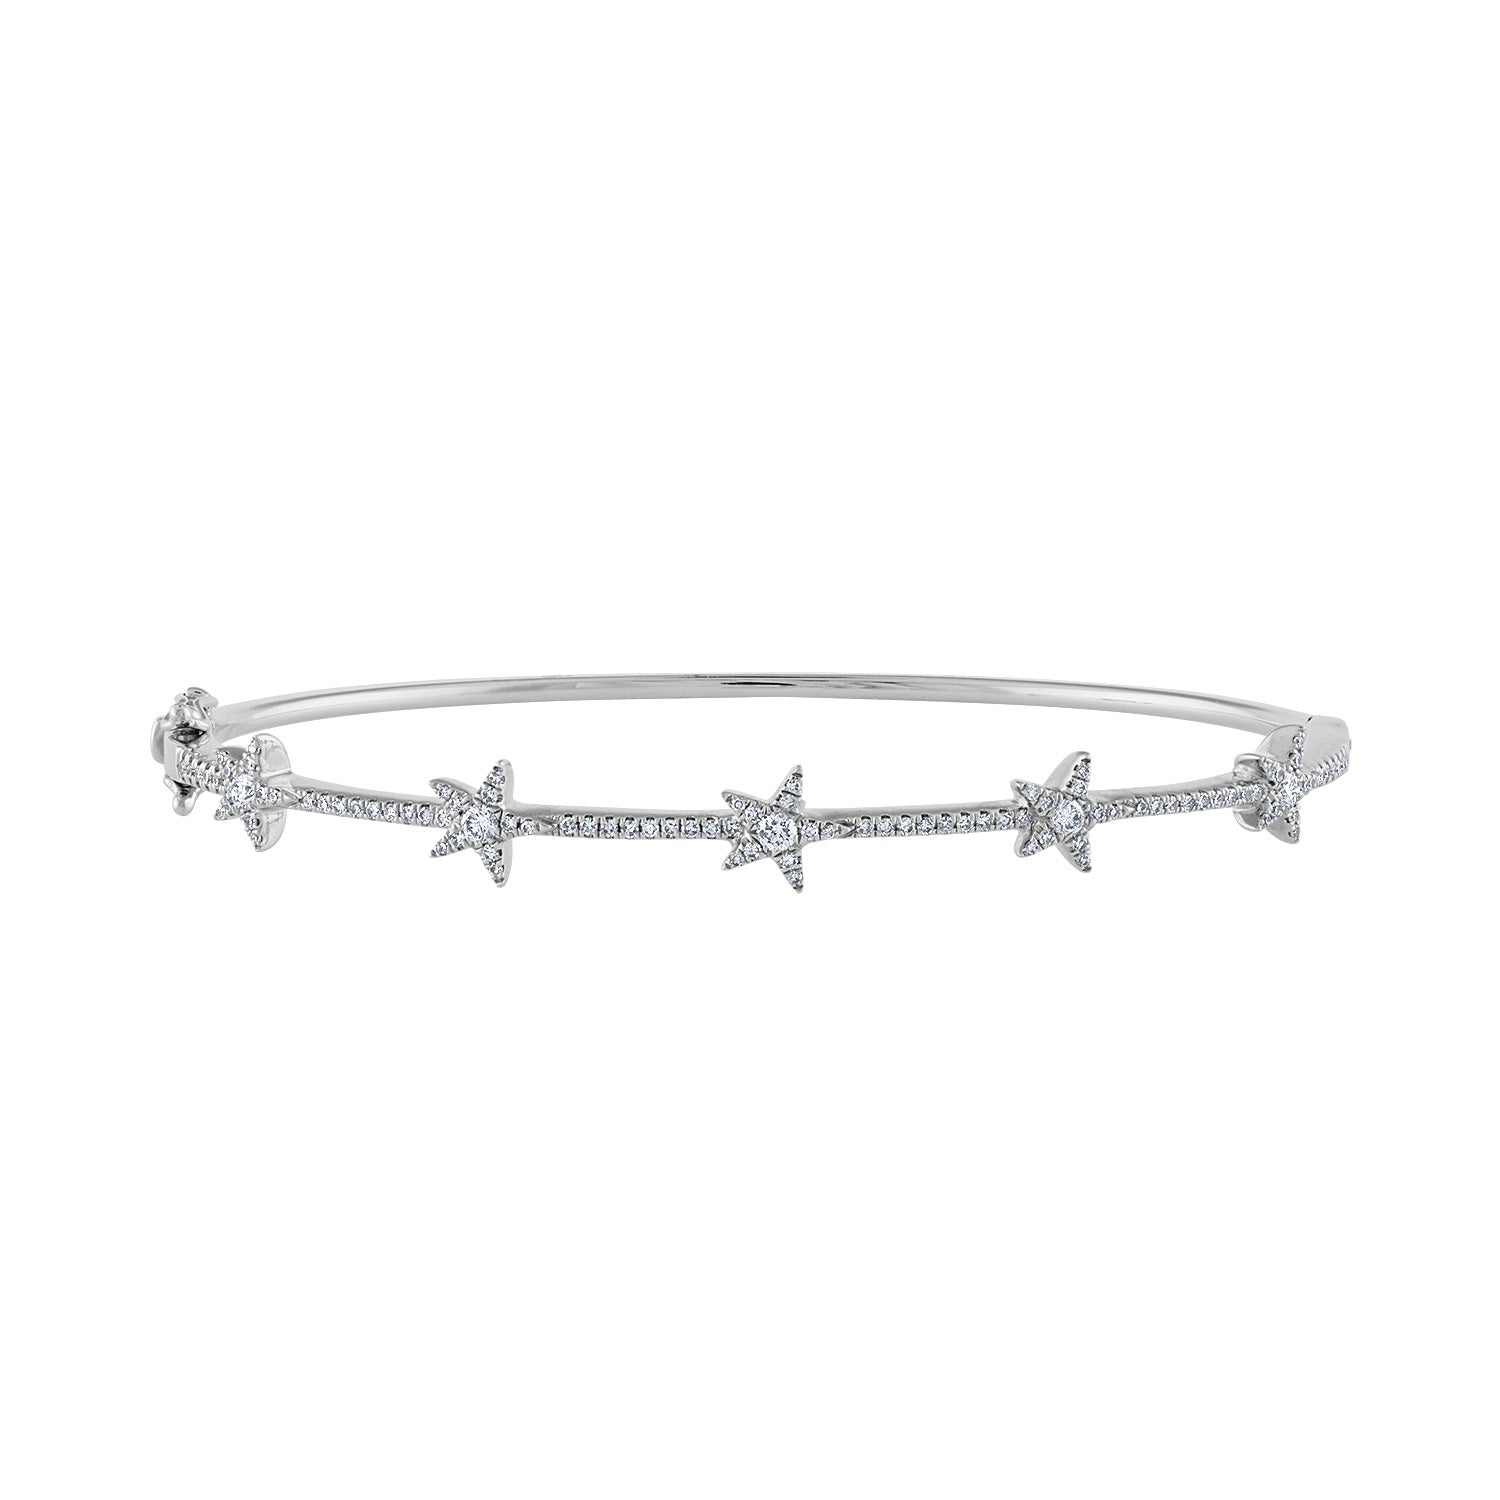 14K White Gold many star diamond bangle